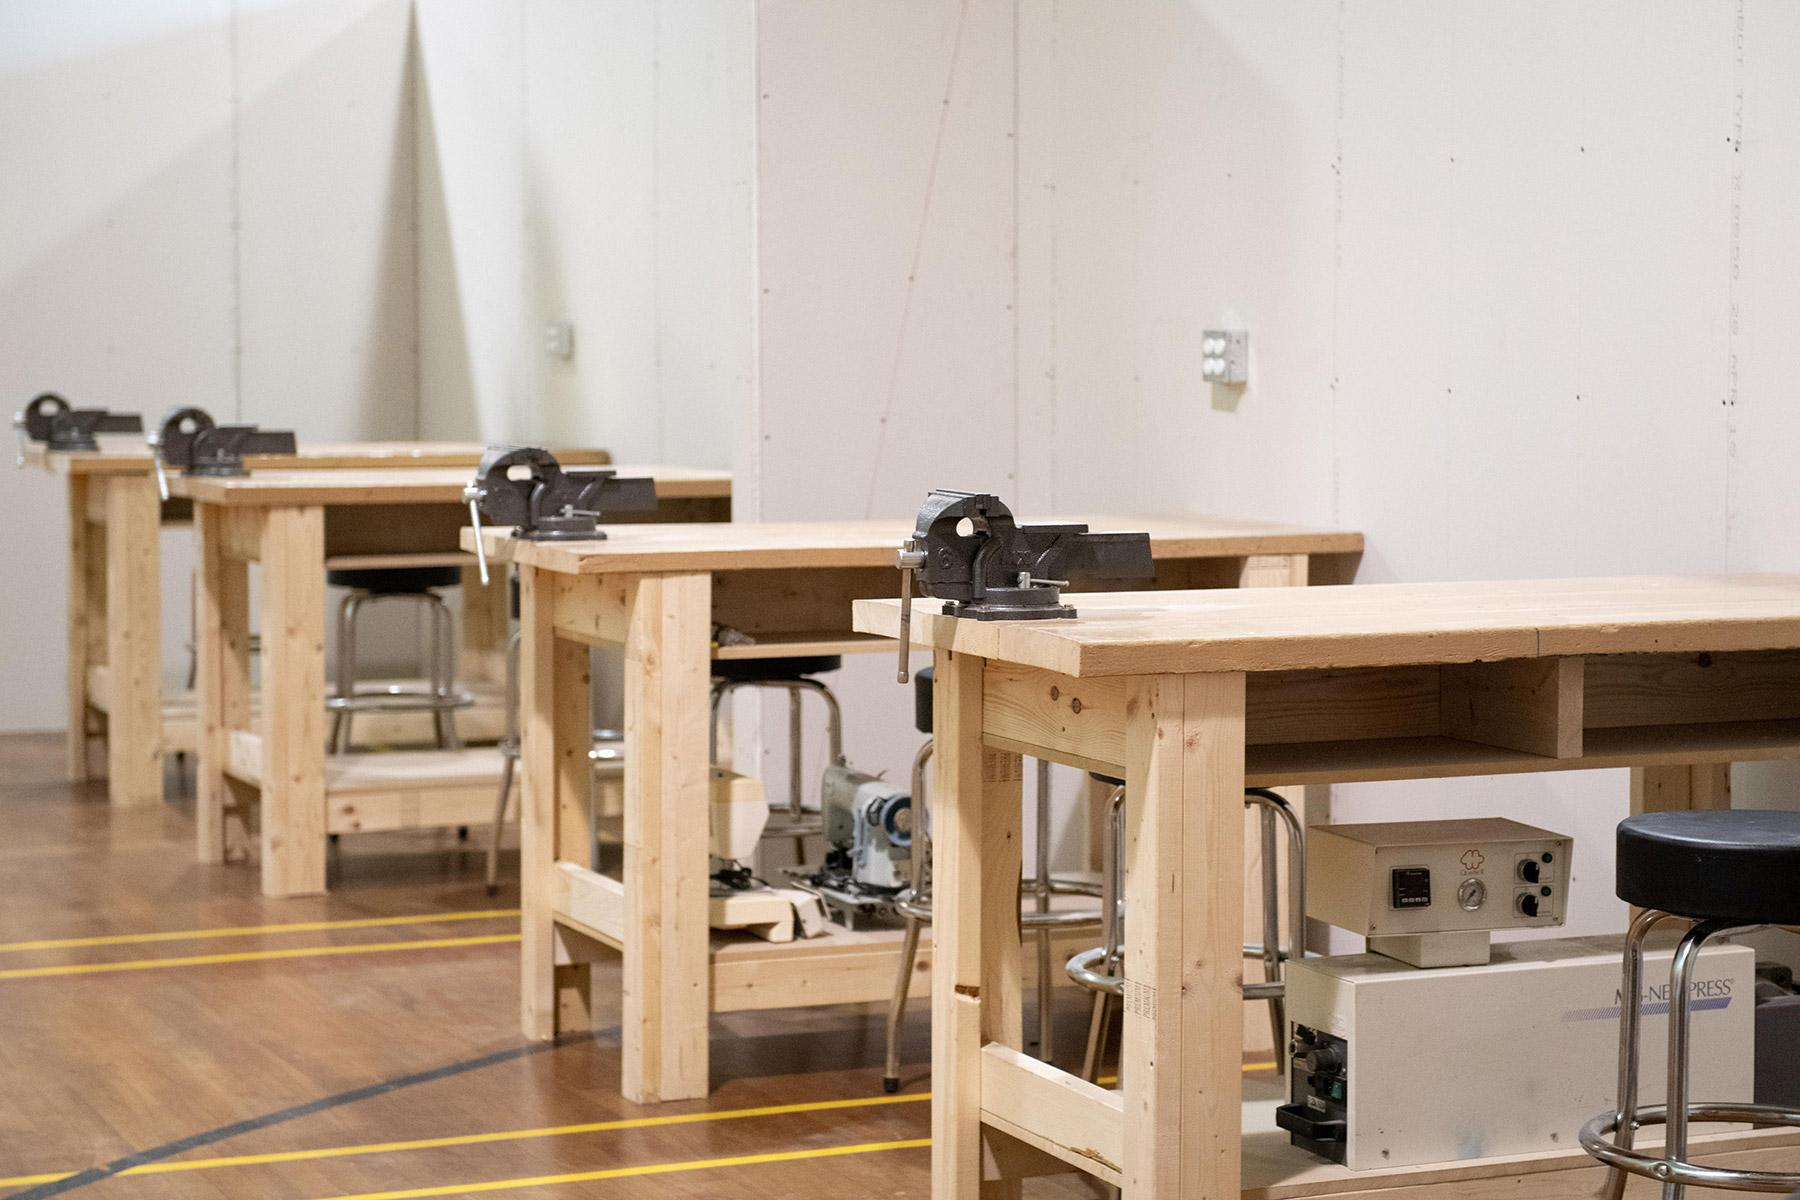 Four wooden bandsaw tables in a workshop.